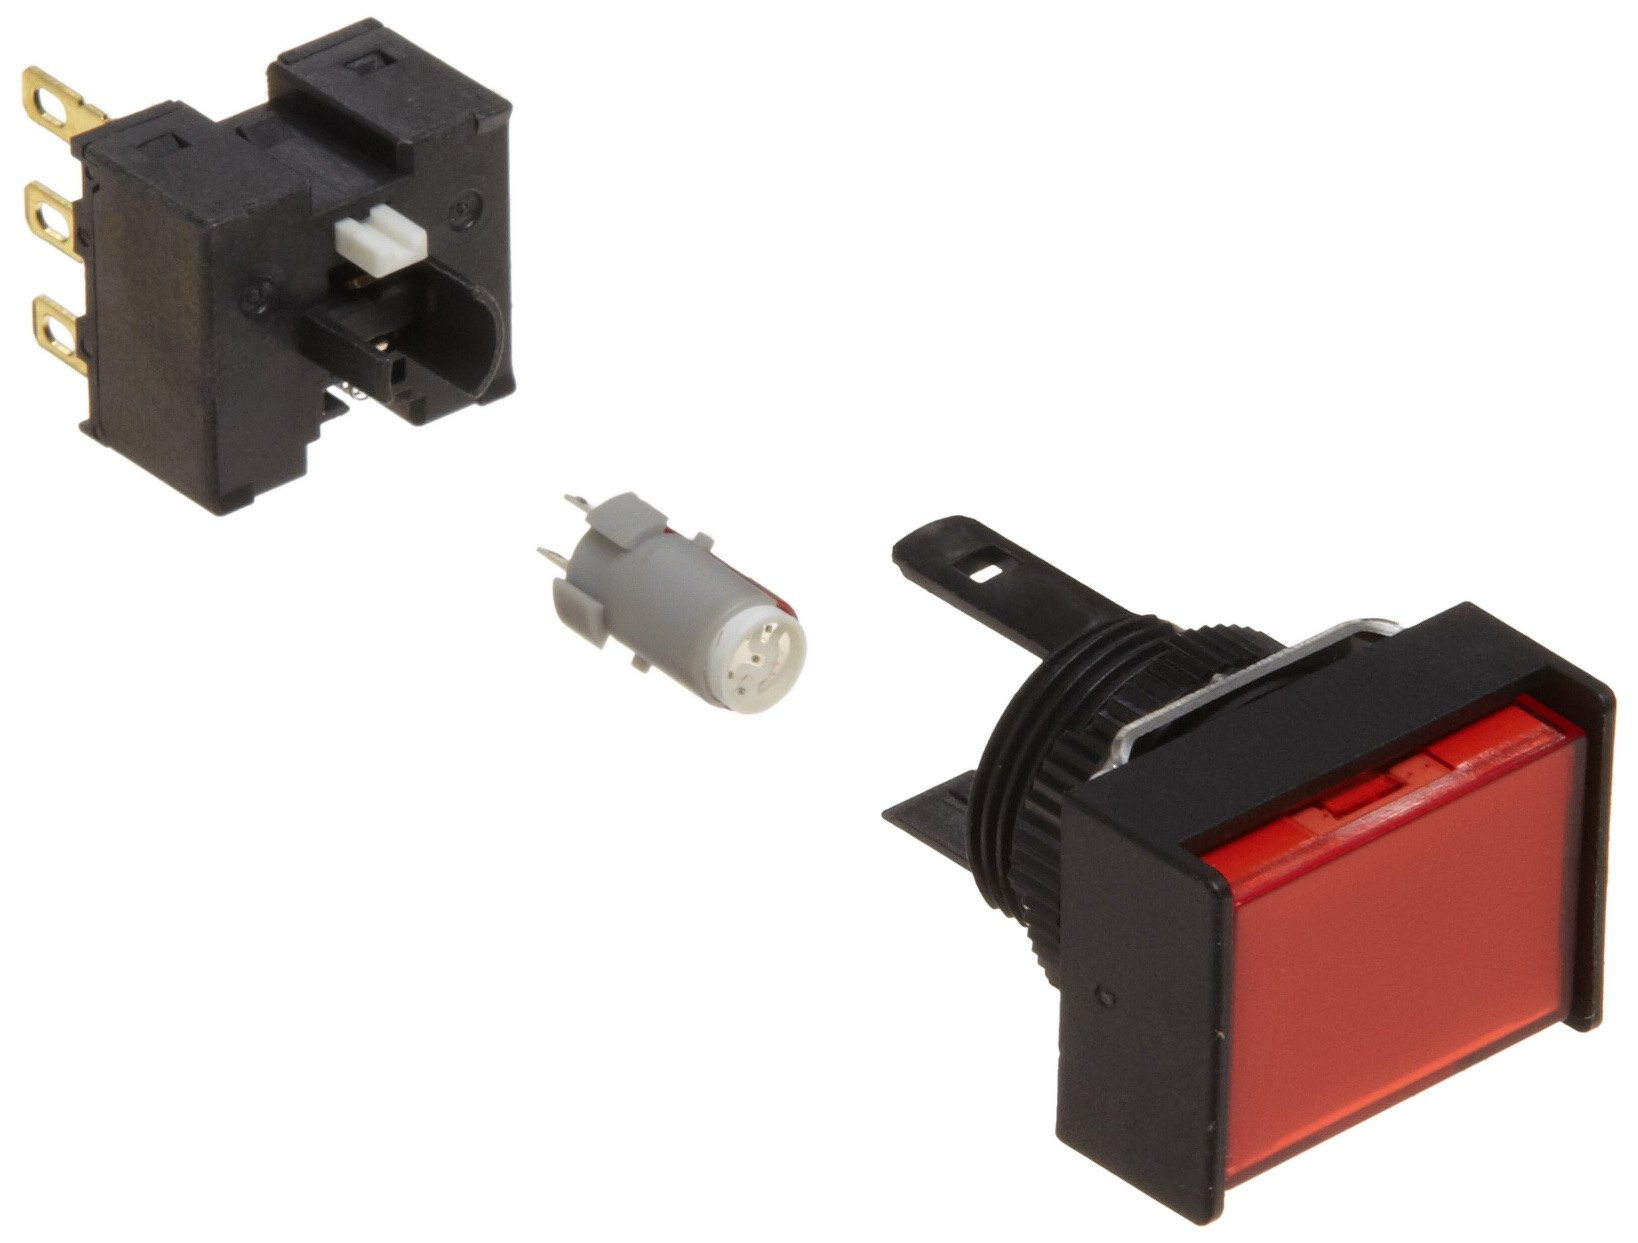 Omron A165L-JRM-24D-1 Two Way Guard Type Pushbutton and Switch, Solder Terminal, IP65 Oil-Resistant, 16mm Mounting Aperture, LED Lighted, Momentary Operation, Rectangular, Red, 24 VDC Rated Voltage, Single Pole Double Throw